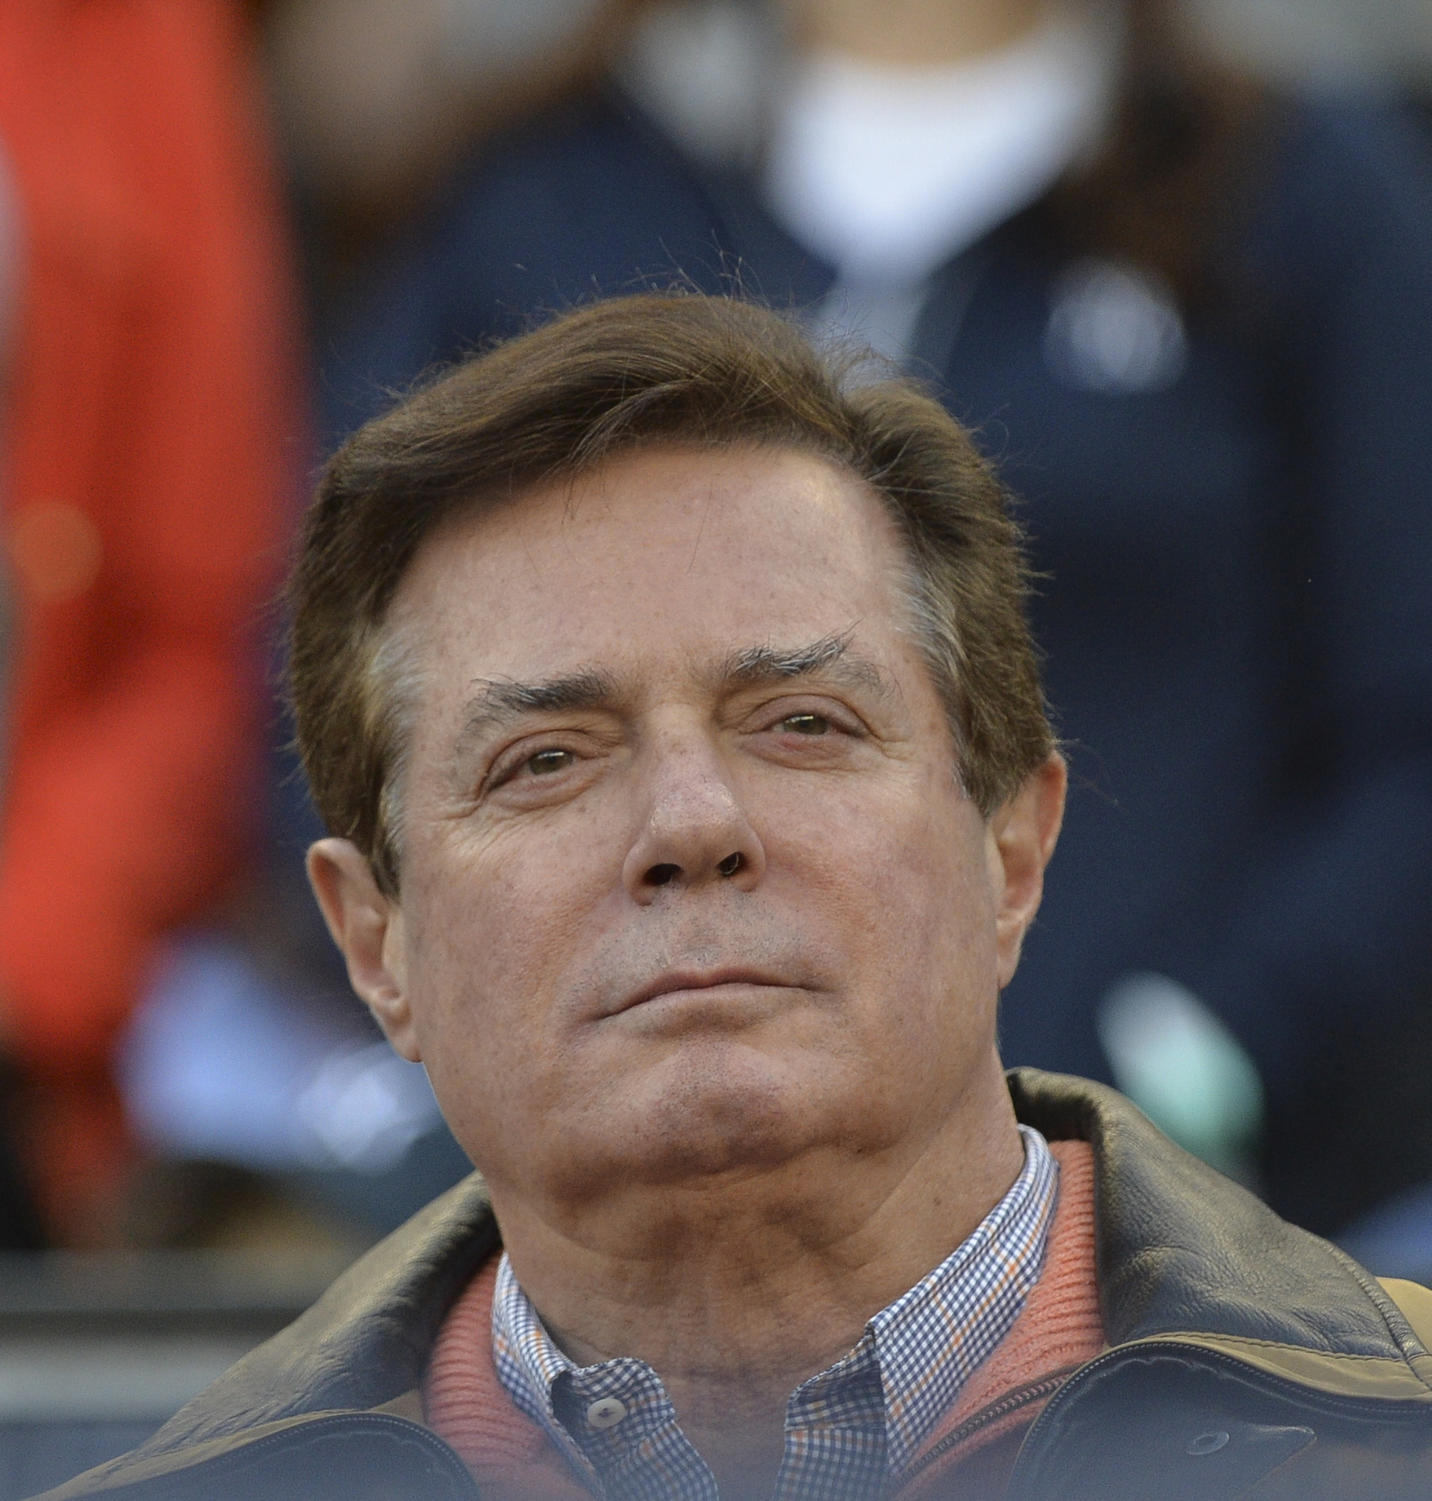 Paul Manafort on hand as the New York Yankees plays host to the Houston Astros in Game 4 of the American League Championship Series at Yankee Stadium in New York on Tuesday, Oct. 17, 2017. President Donald Trump's former campaign chairman, has surrendered to federal authorities, according to multiple reports. (Howard Simmons/New York Daily News/TNS)